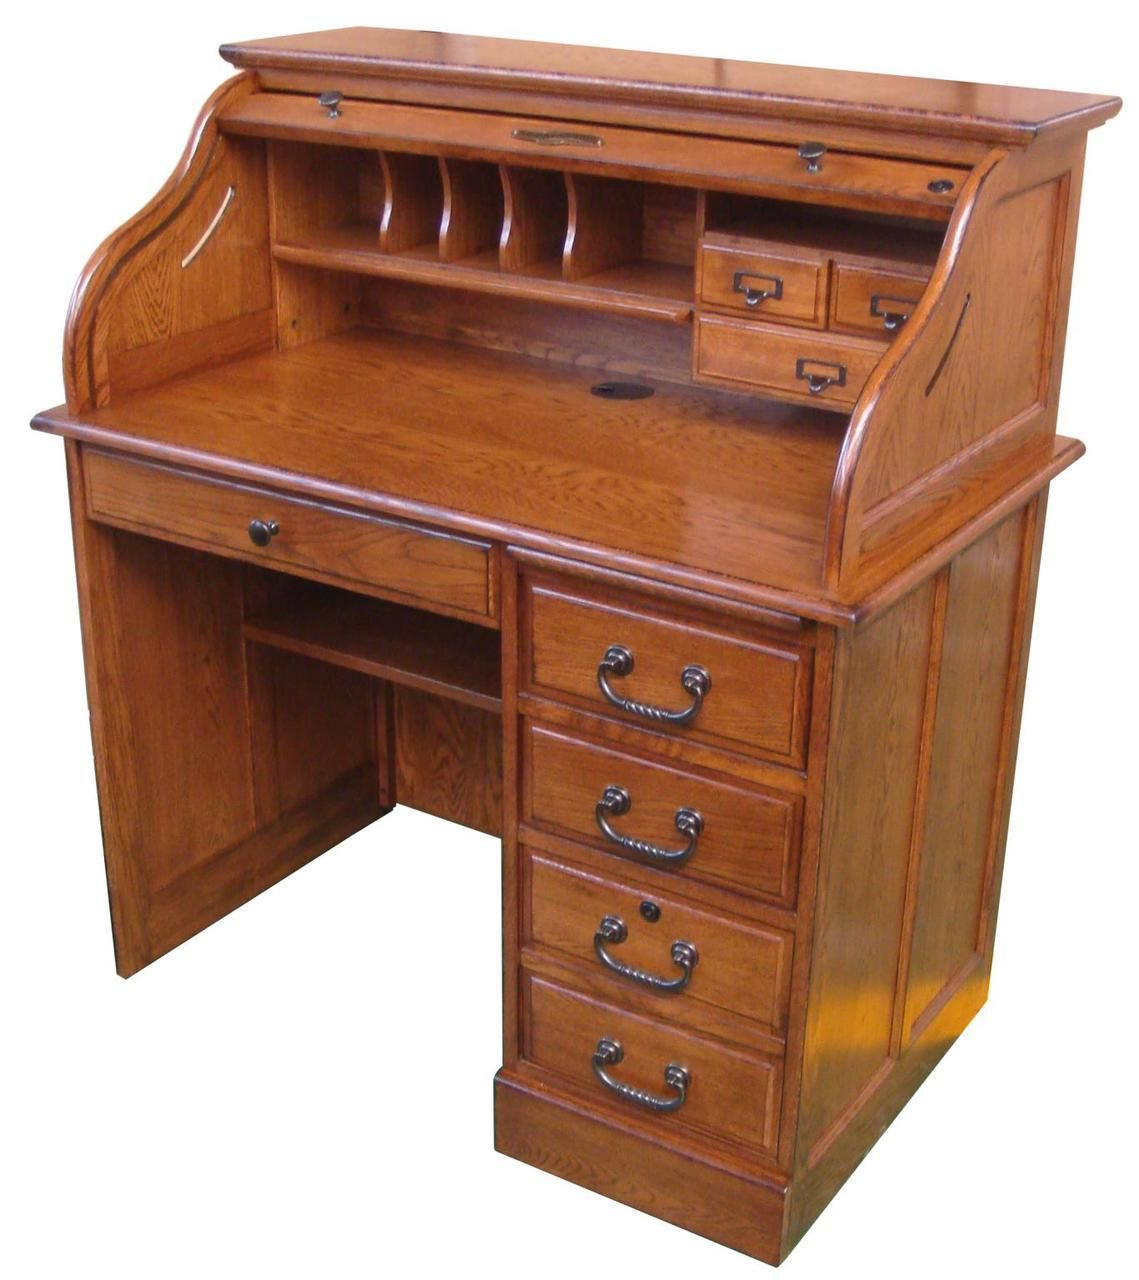 Solid Oak Wood Small Student Roll Top Desk Single Pedestal 42x24x45 Home Office Organizer Roll Top Desk Chelsea Home Furniture Secretary Desks